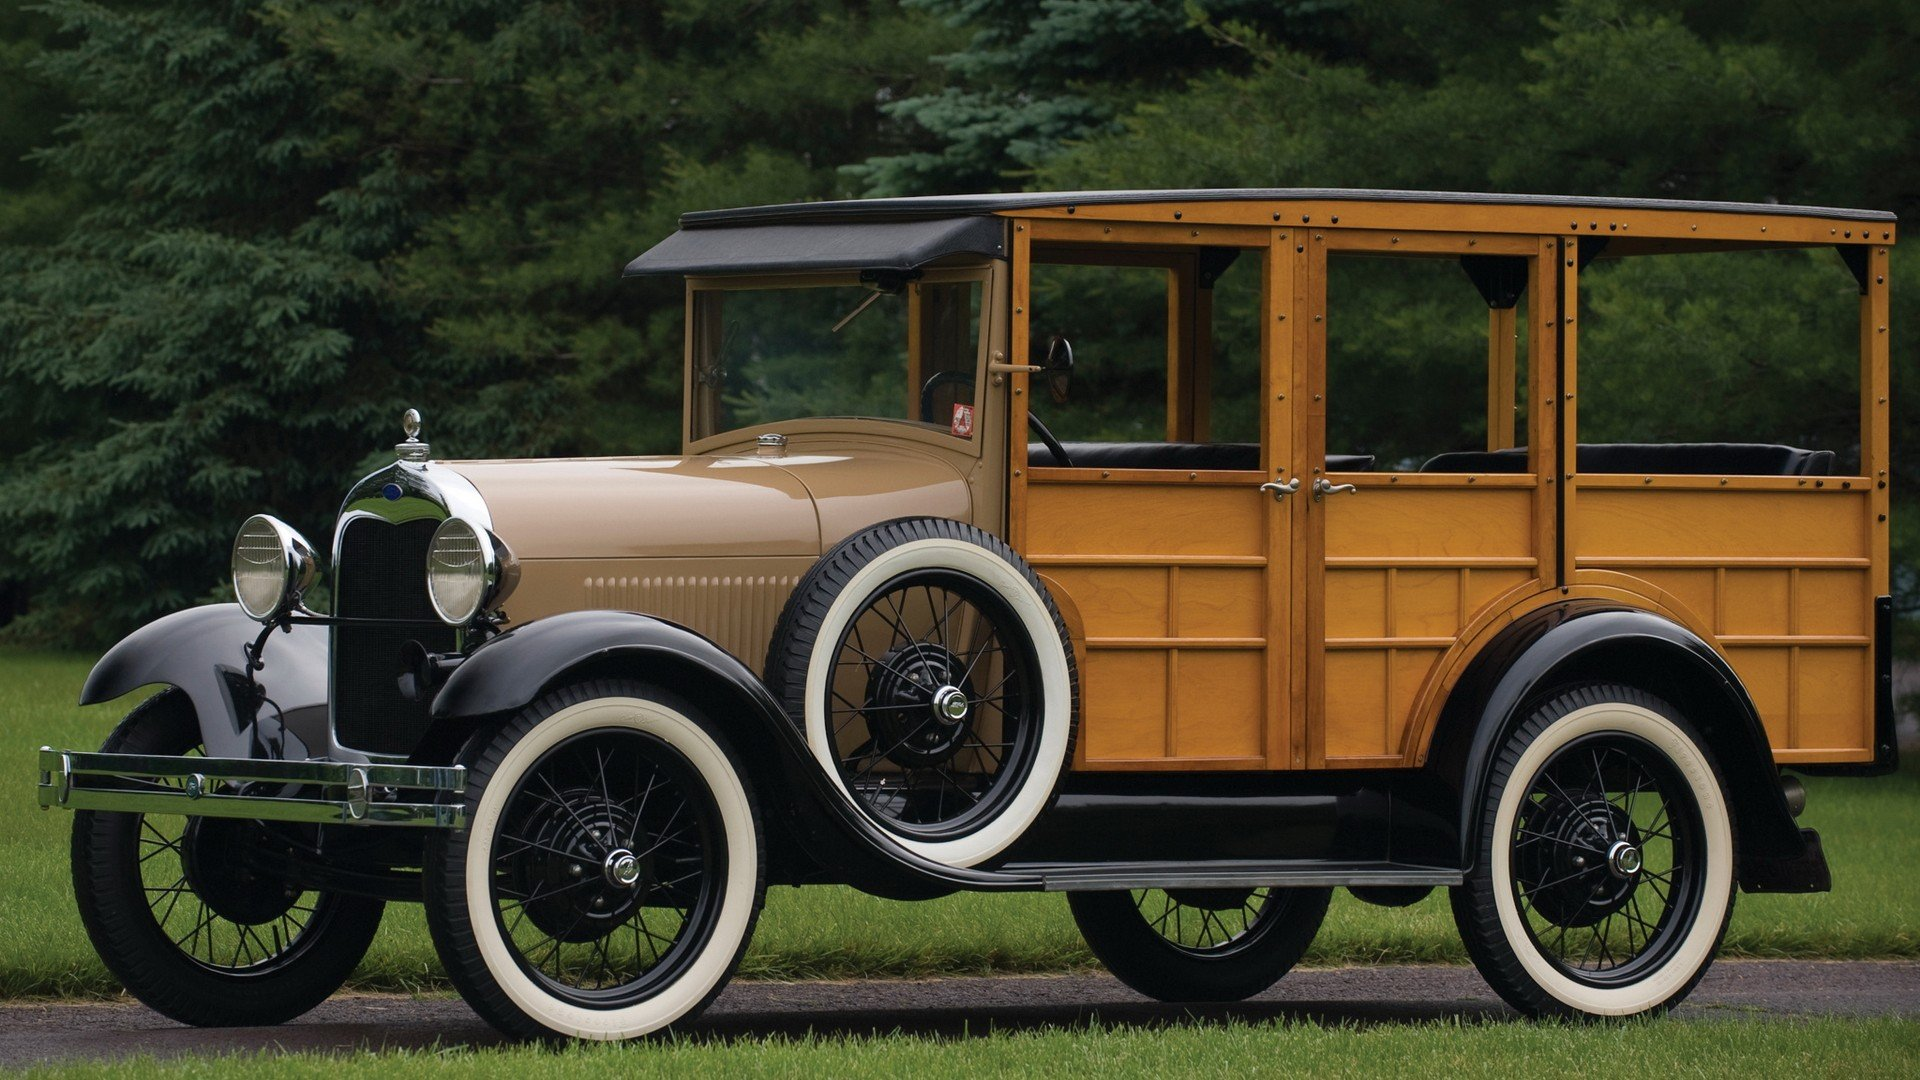 old model t cars wallpapers - photo #14